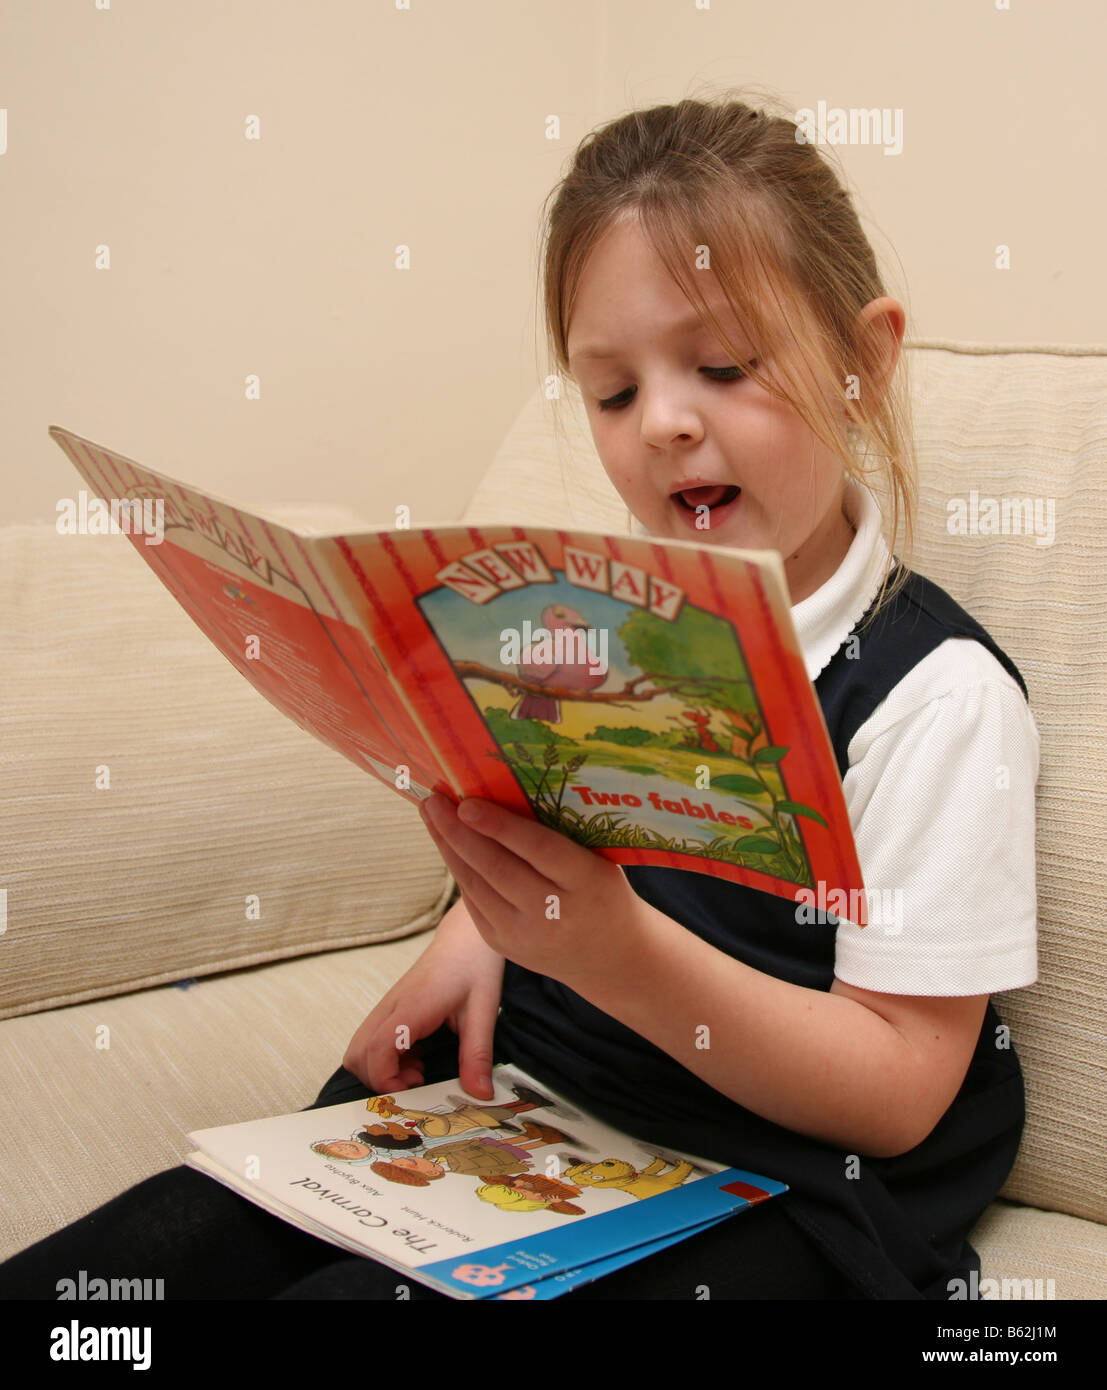 5 Year Old Girl In School Uniform Reading Her Books Loaned